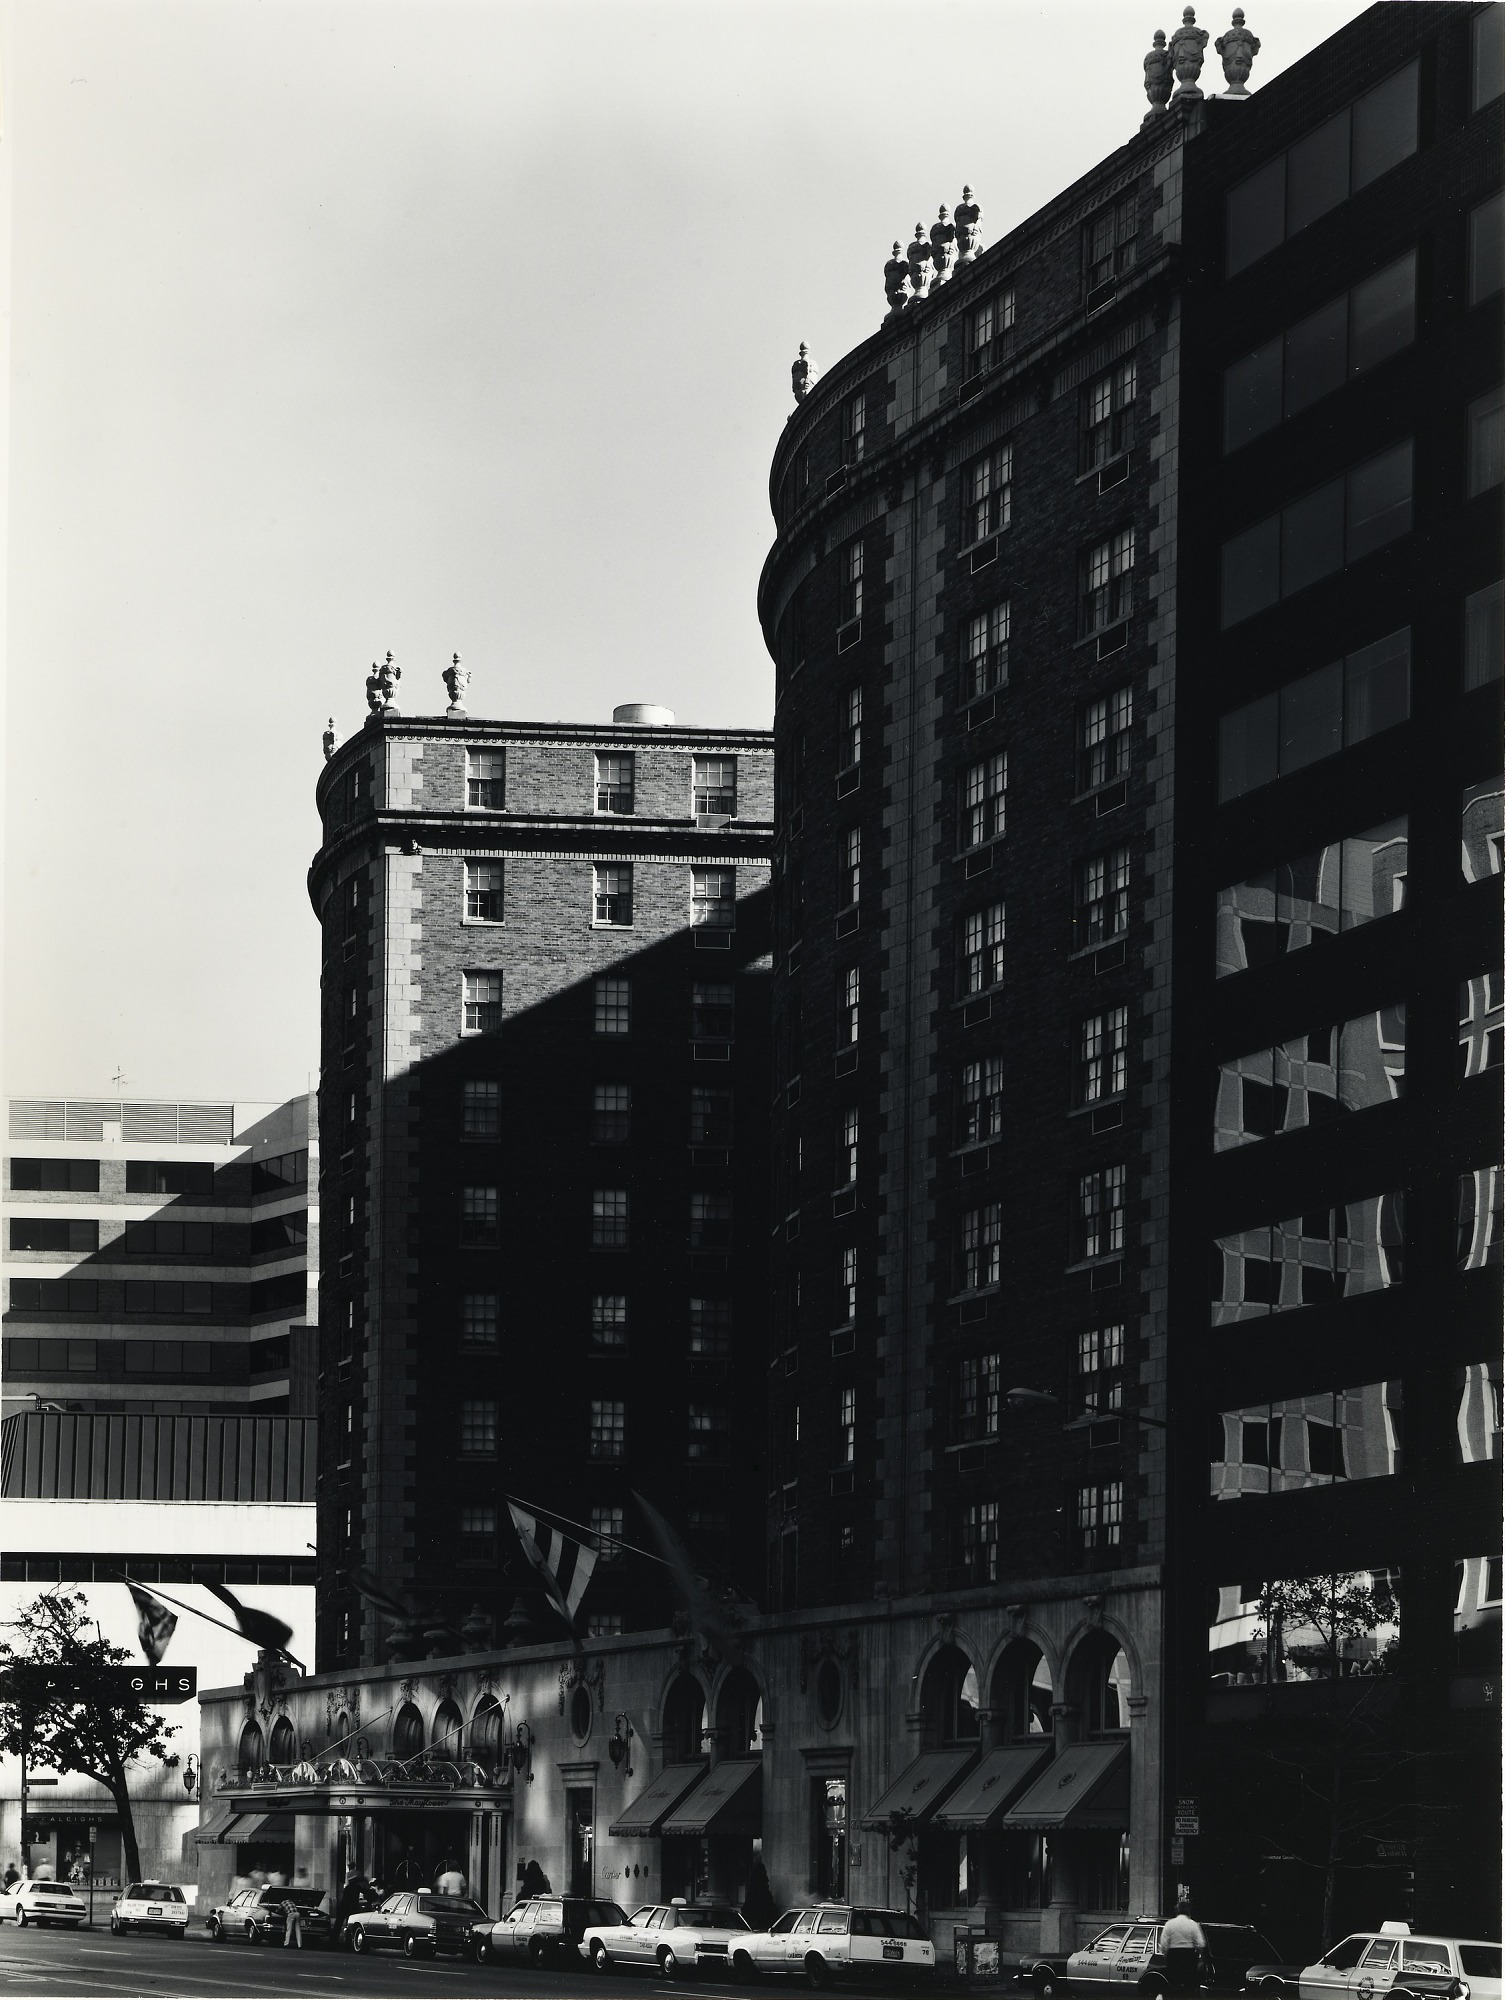 Untitled, from the series Connecticut Avenue